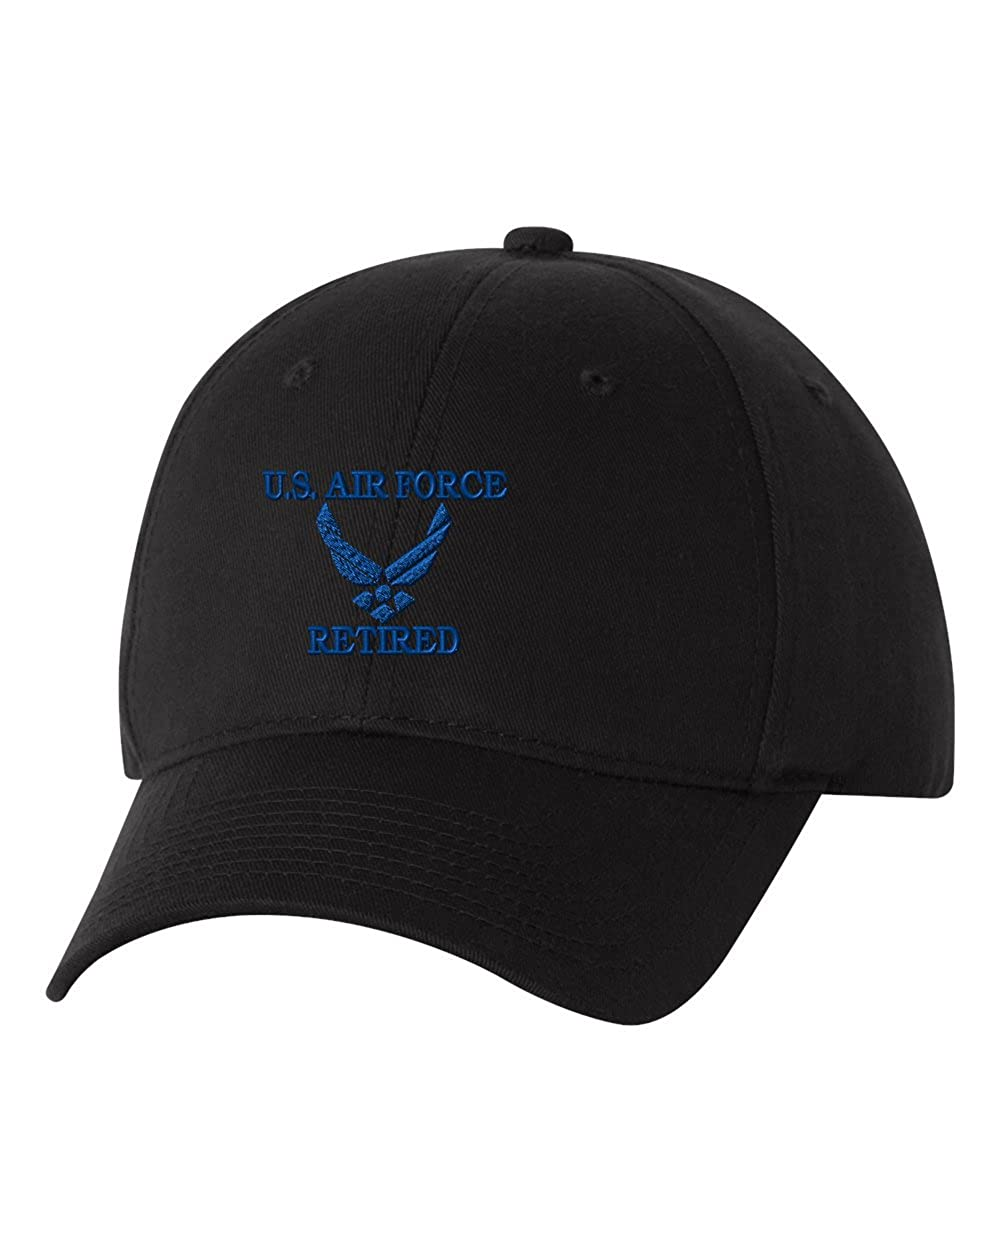 1fdaab3afcb Us air force retired custom personalized embroidery embroidered baseball hat  cap clothing jpg 1000x1250 Air force